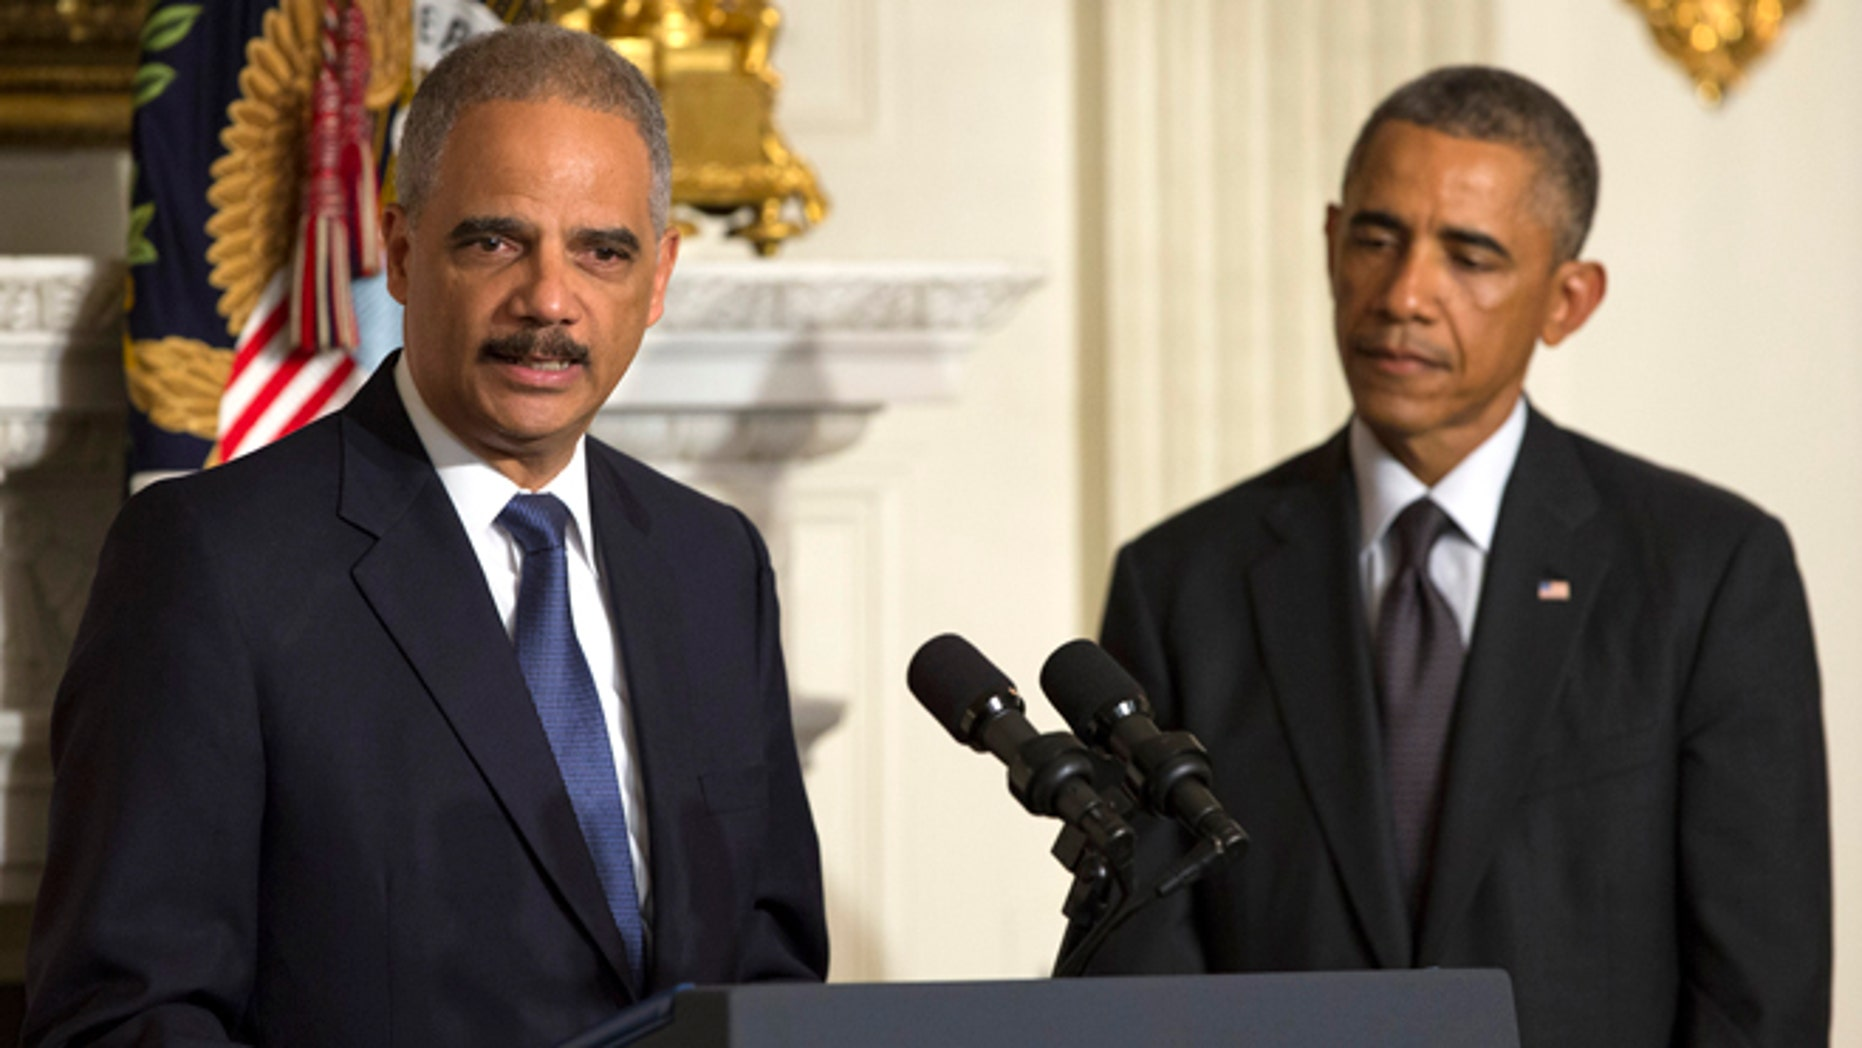 In this Thursday, Sept. 25, 2014 photo, President Barack Obama, right, looks on as Attorney General Eric Holder speaks in the State Dining Room of the White House, in Washington.